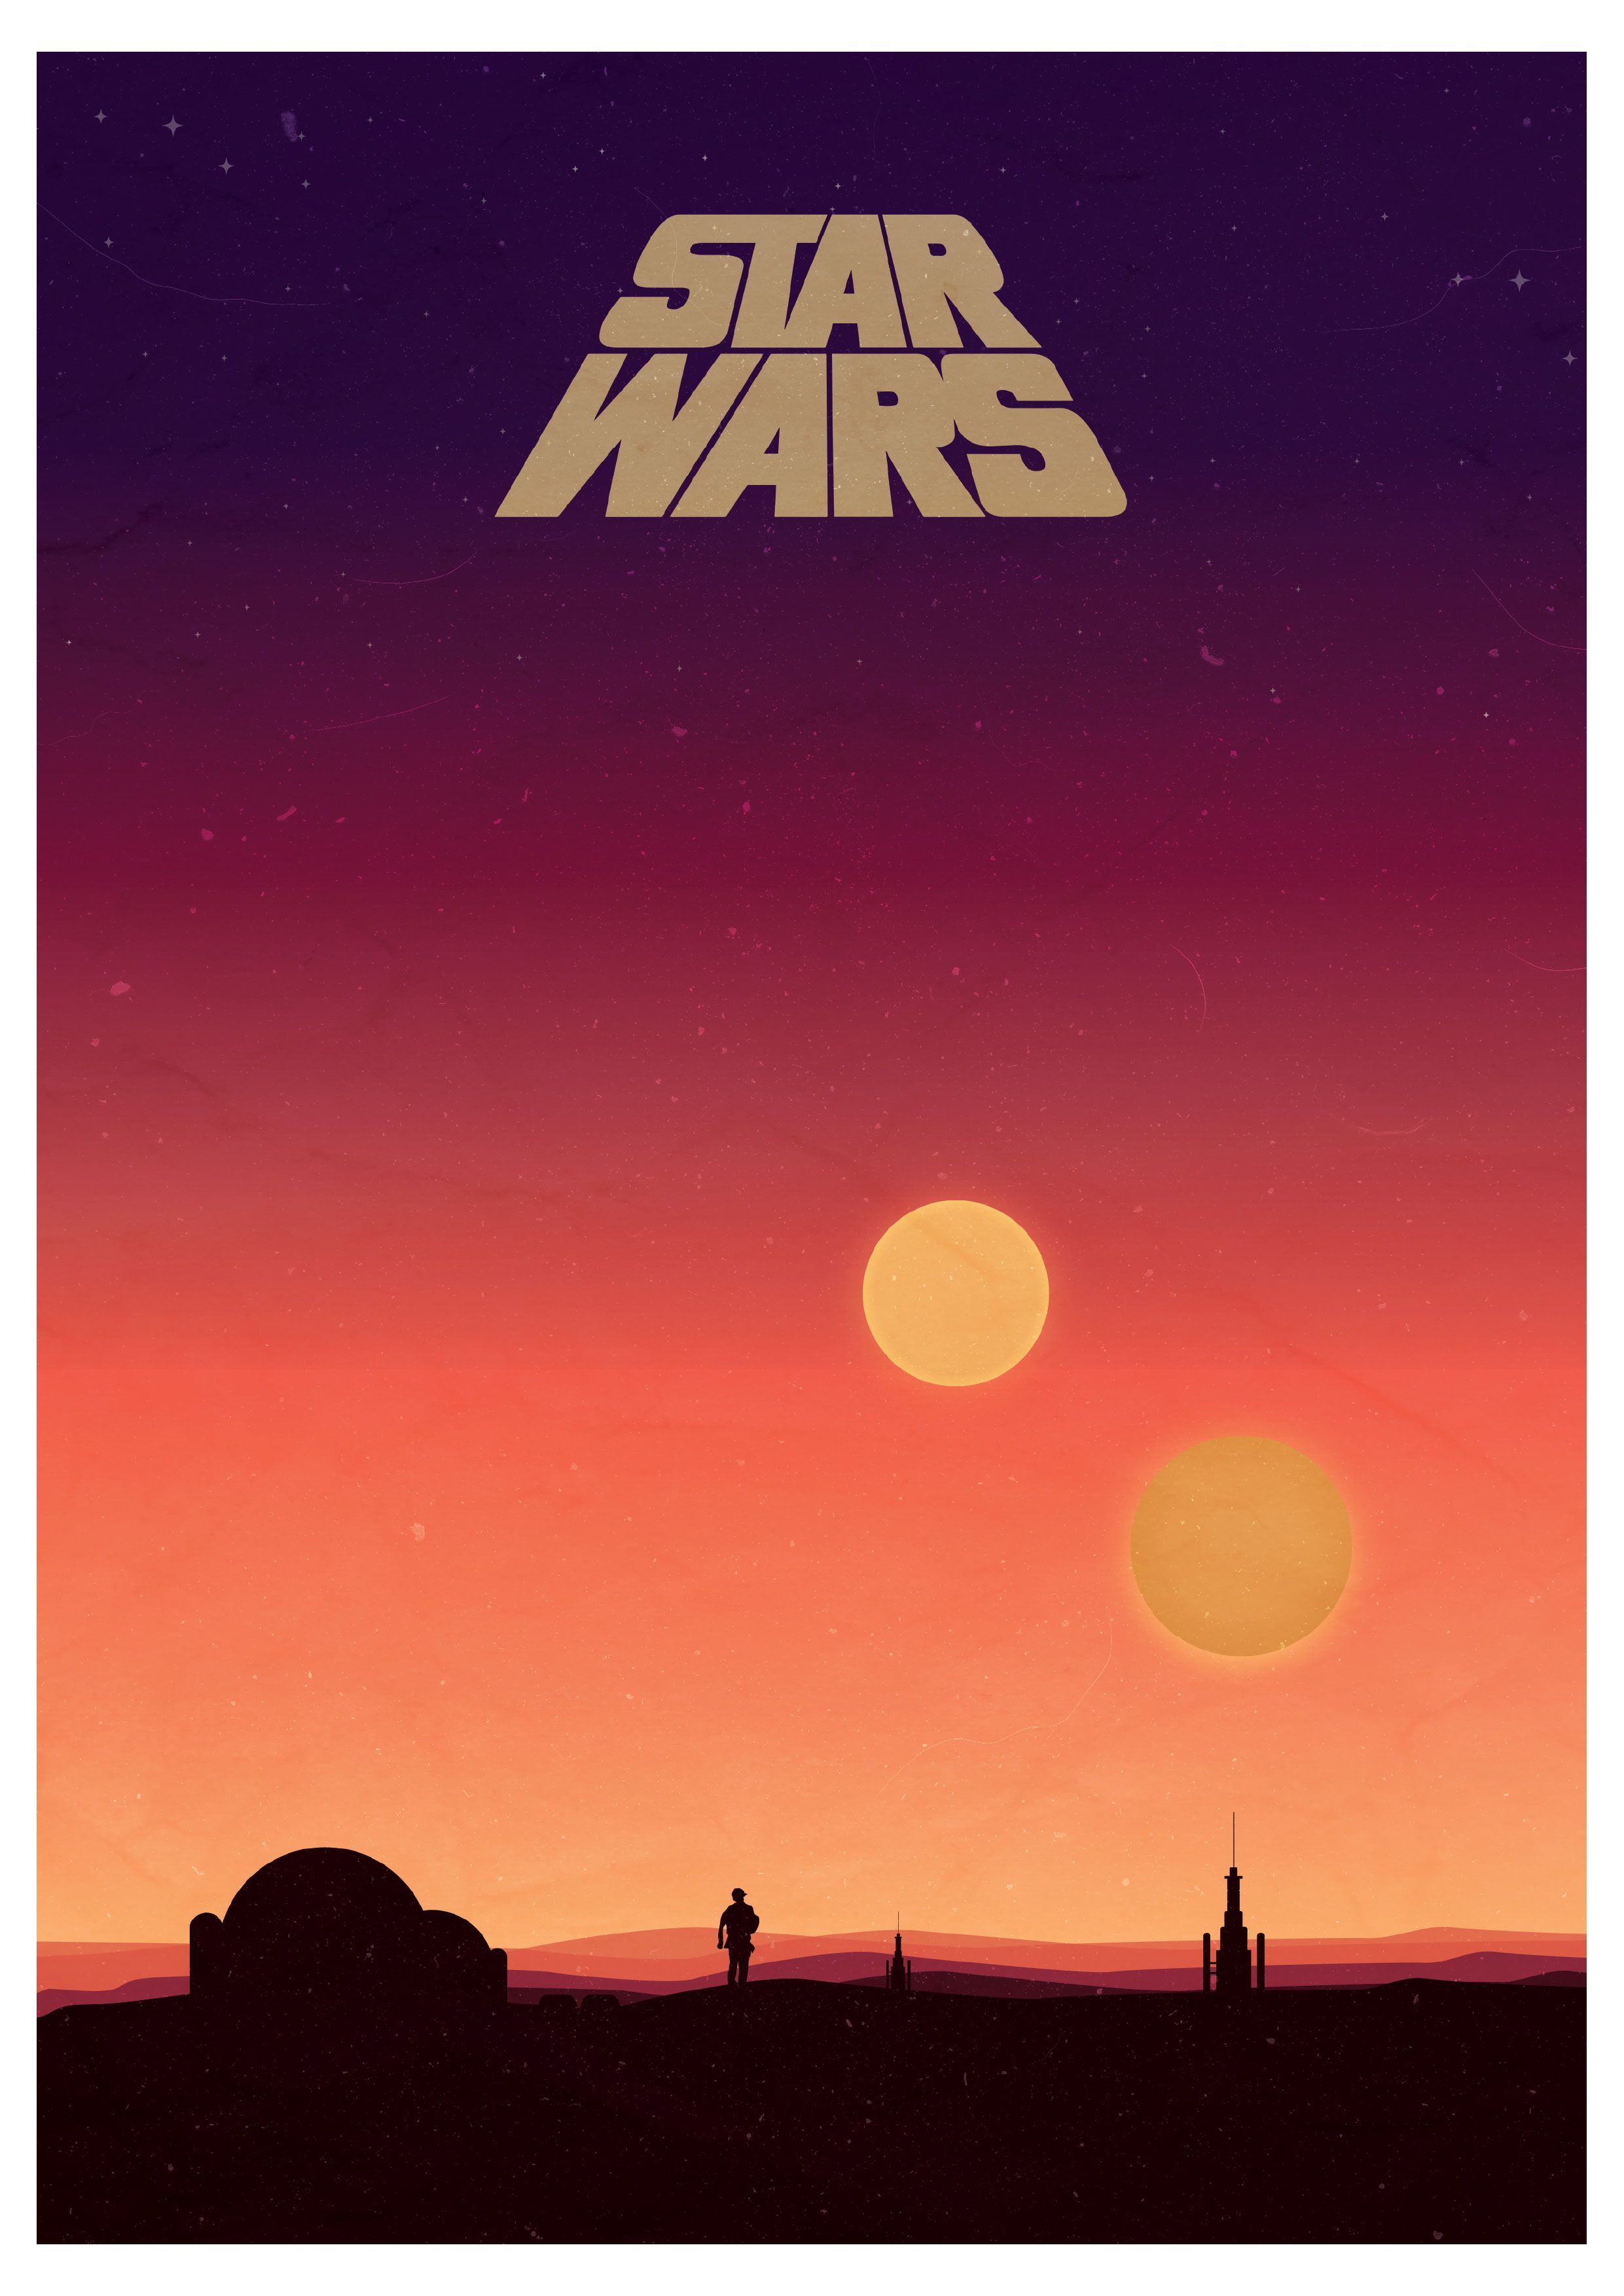 Star Wars Binary Sunset Poster I Made This One The Weekend Was Super Fun Imgur Starwarswallpap In 2020 Star Wars Painting Star Wars Background Star Wars Wallpaper